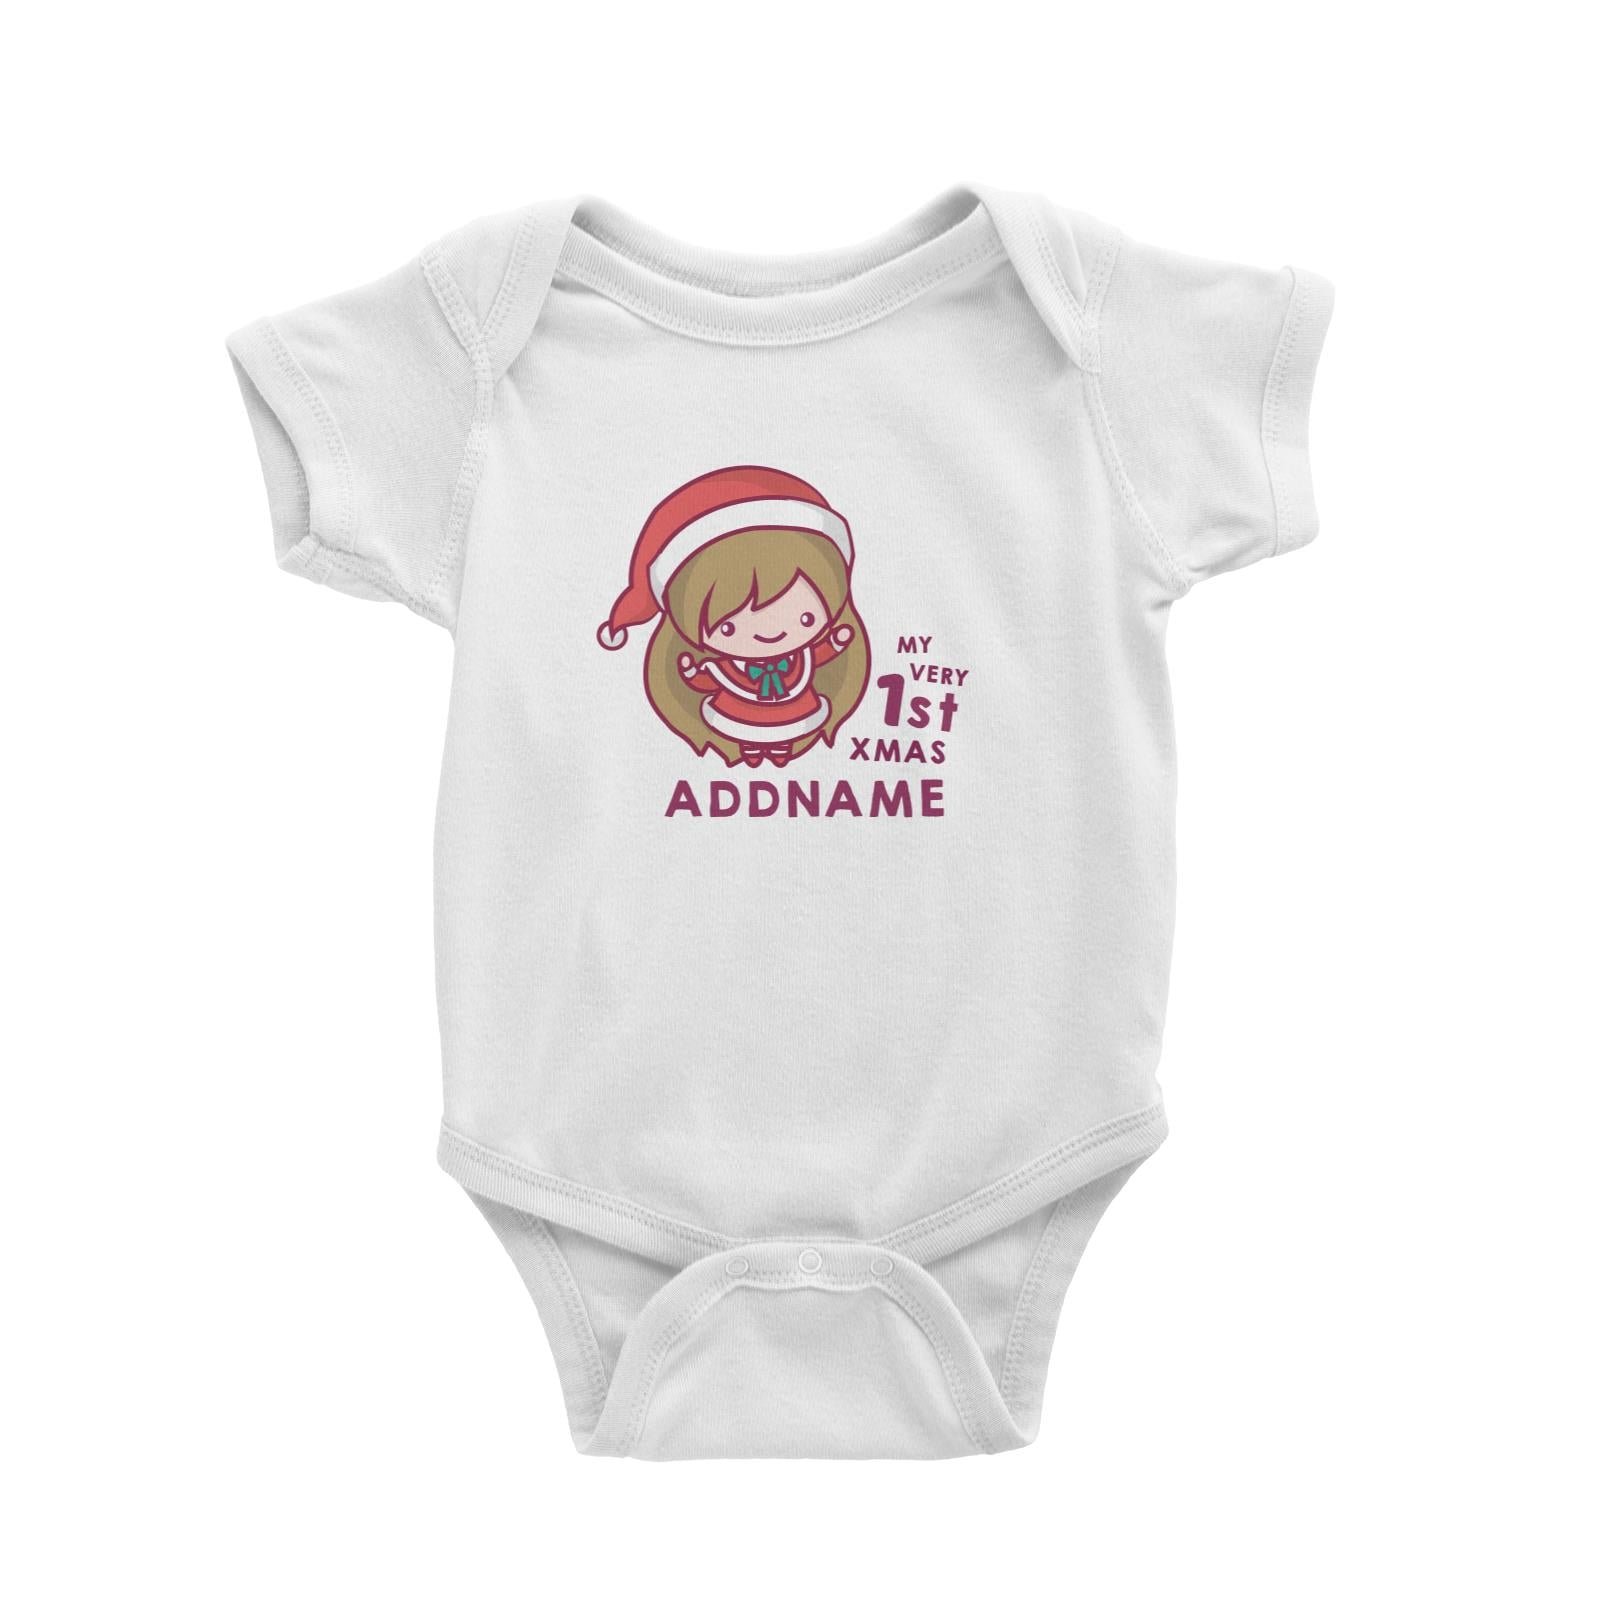 Christmas My Very 1st Santa Girl Addname Baby Romper